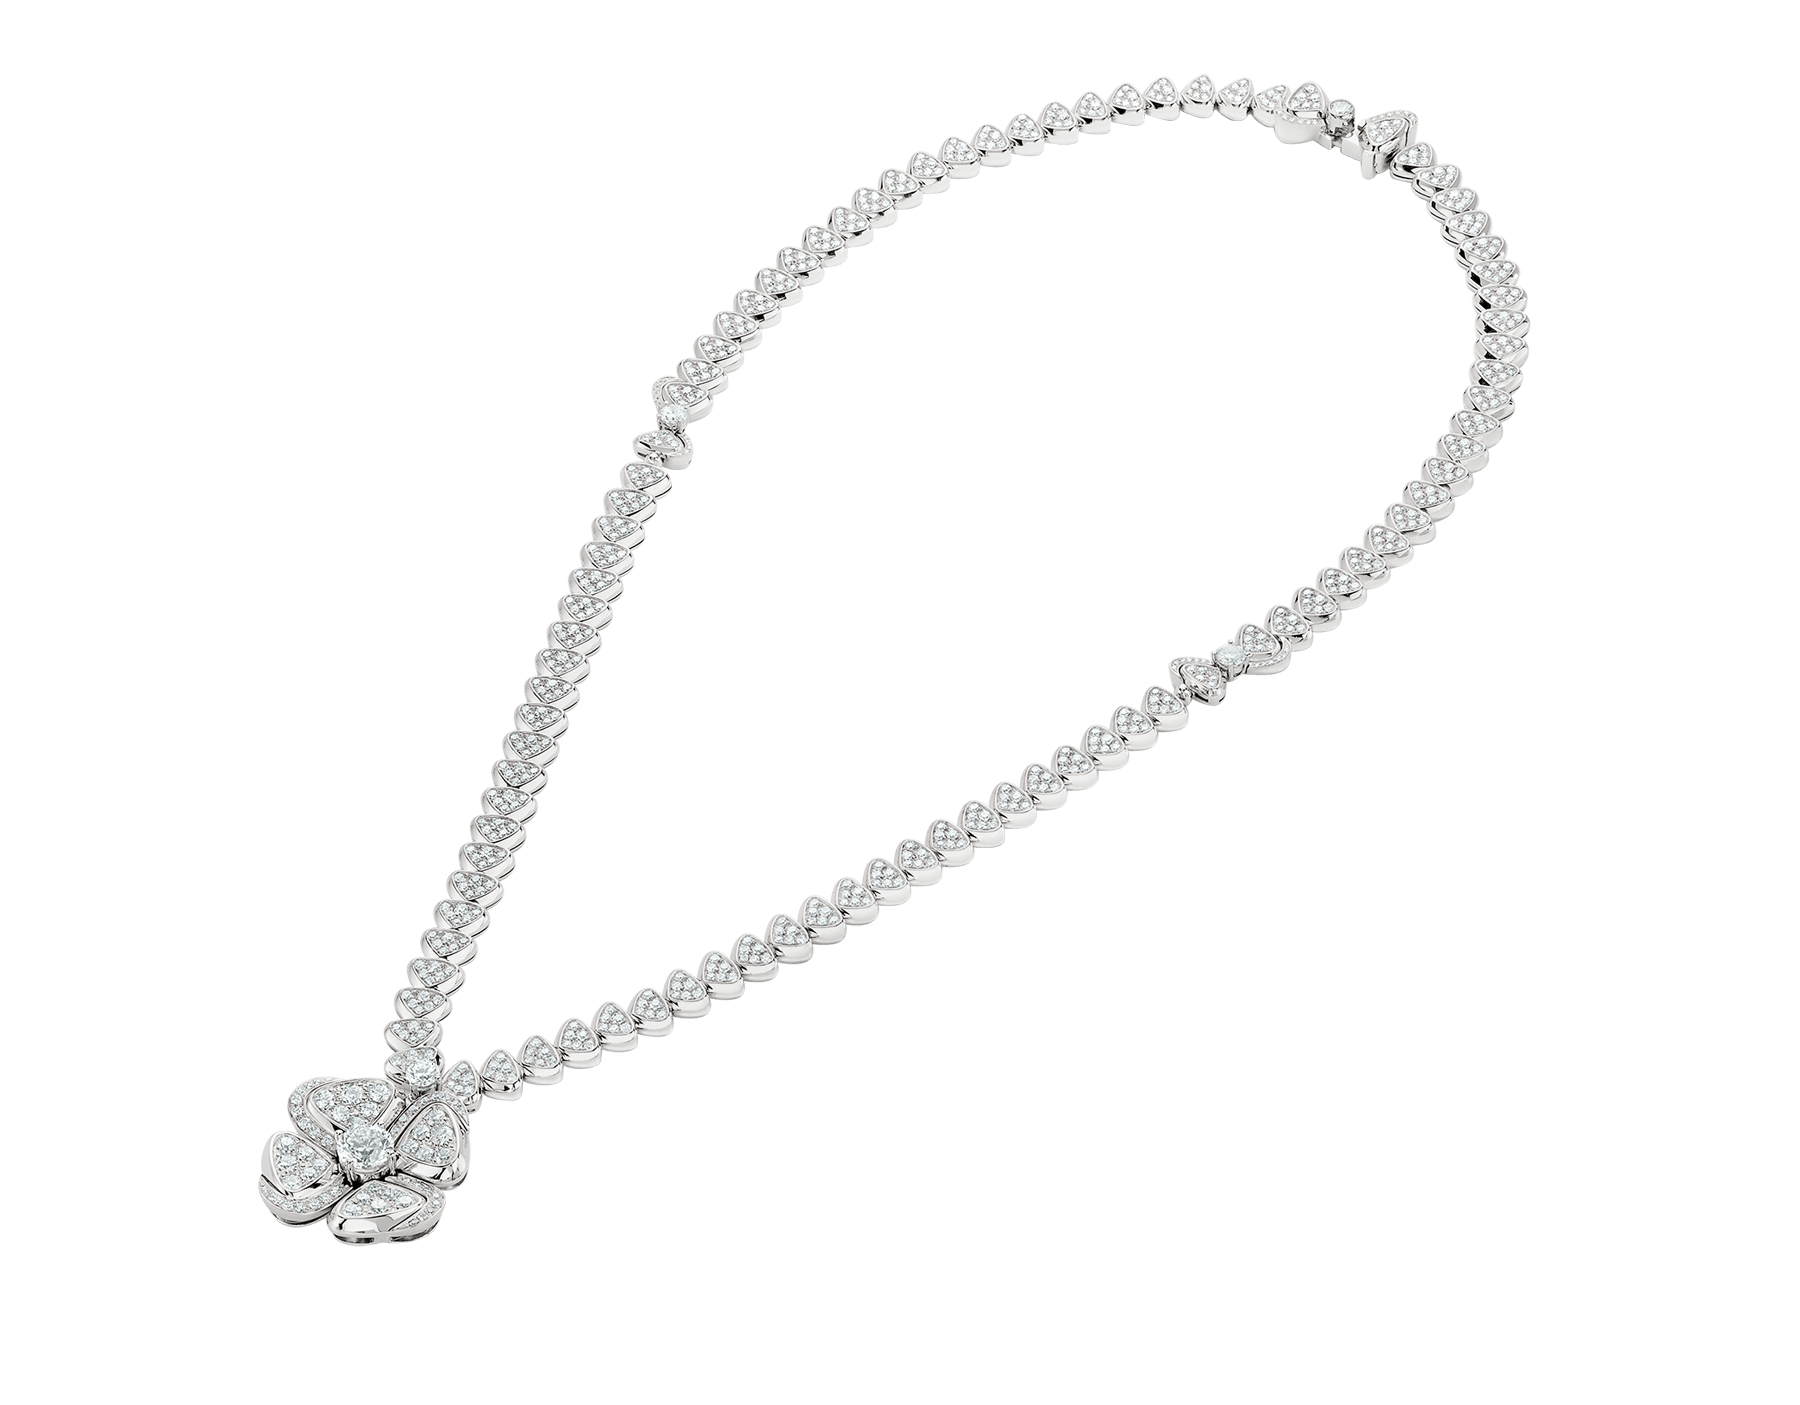 Fiorever 18 kt white gold necklace set with a central diamond (0.70 ct) and pavé diamonds 357377 image 2